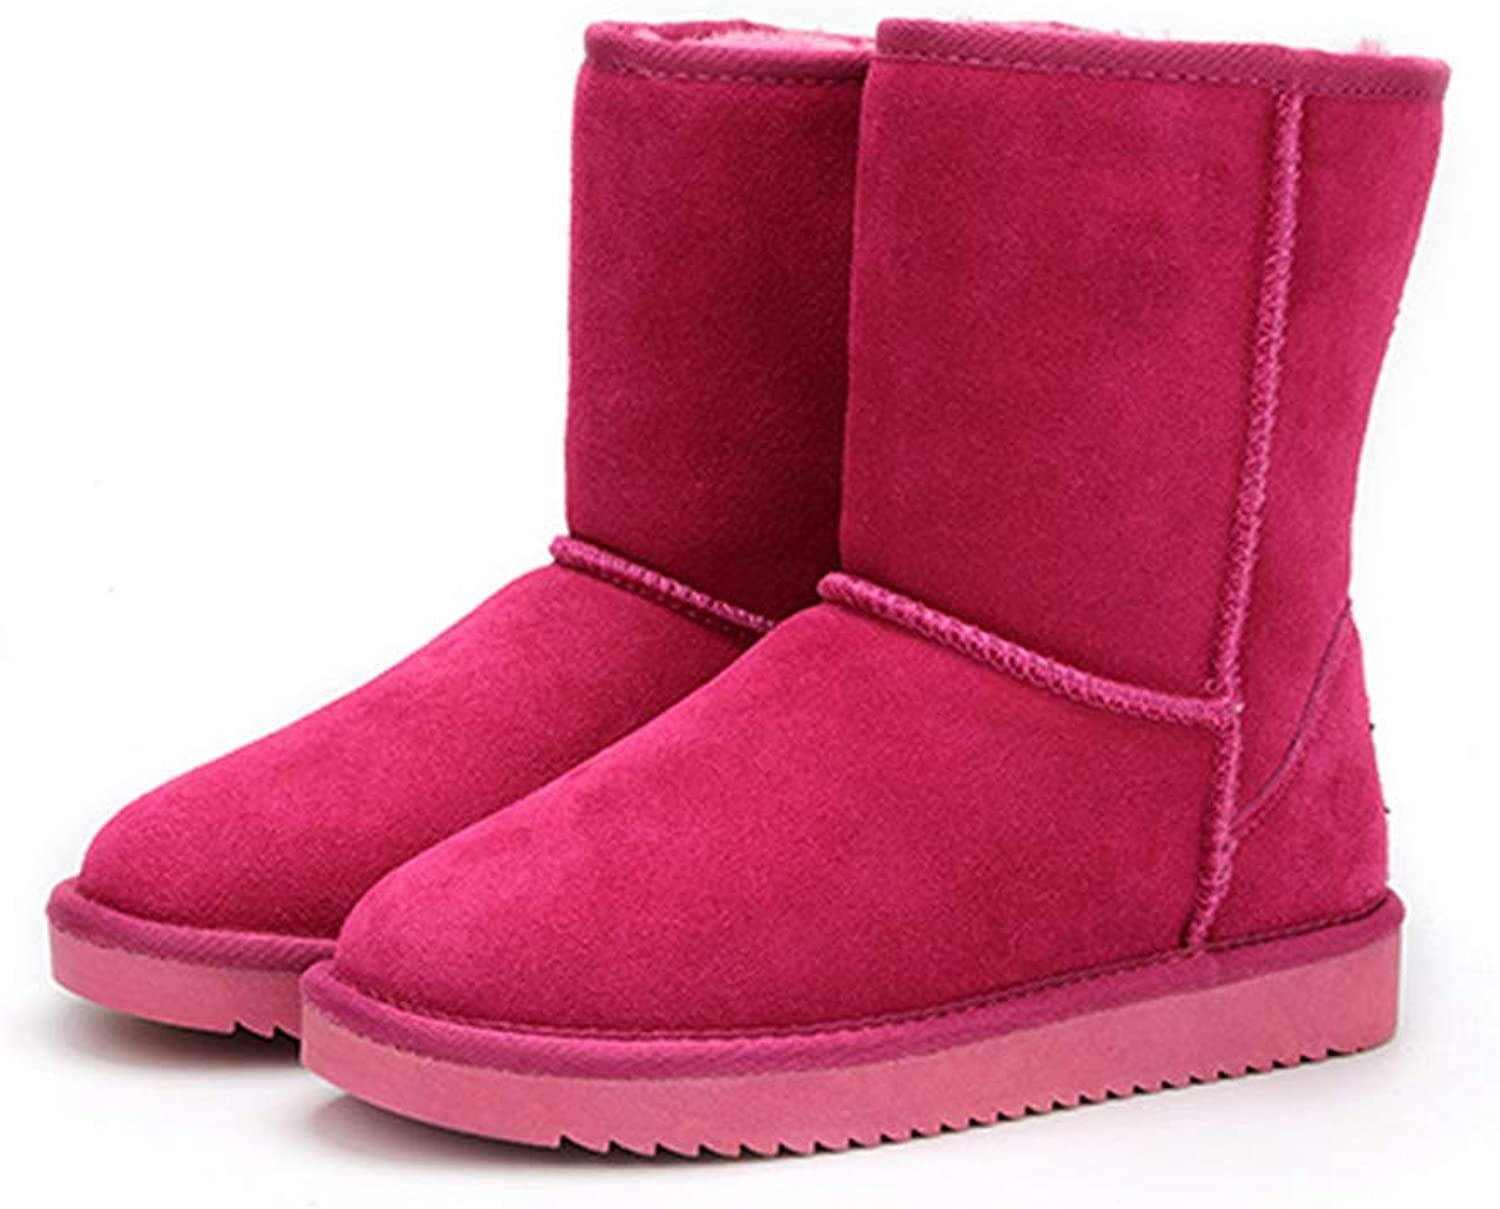 Hoxekle Snow Boots Fashion Girls Snow Boots for Women Warm Winter Boots Women Round Toe Flats shoes